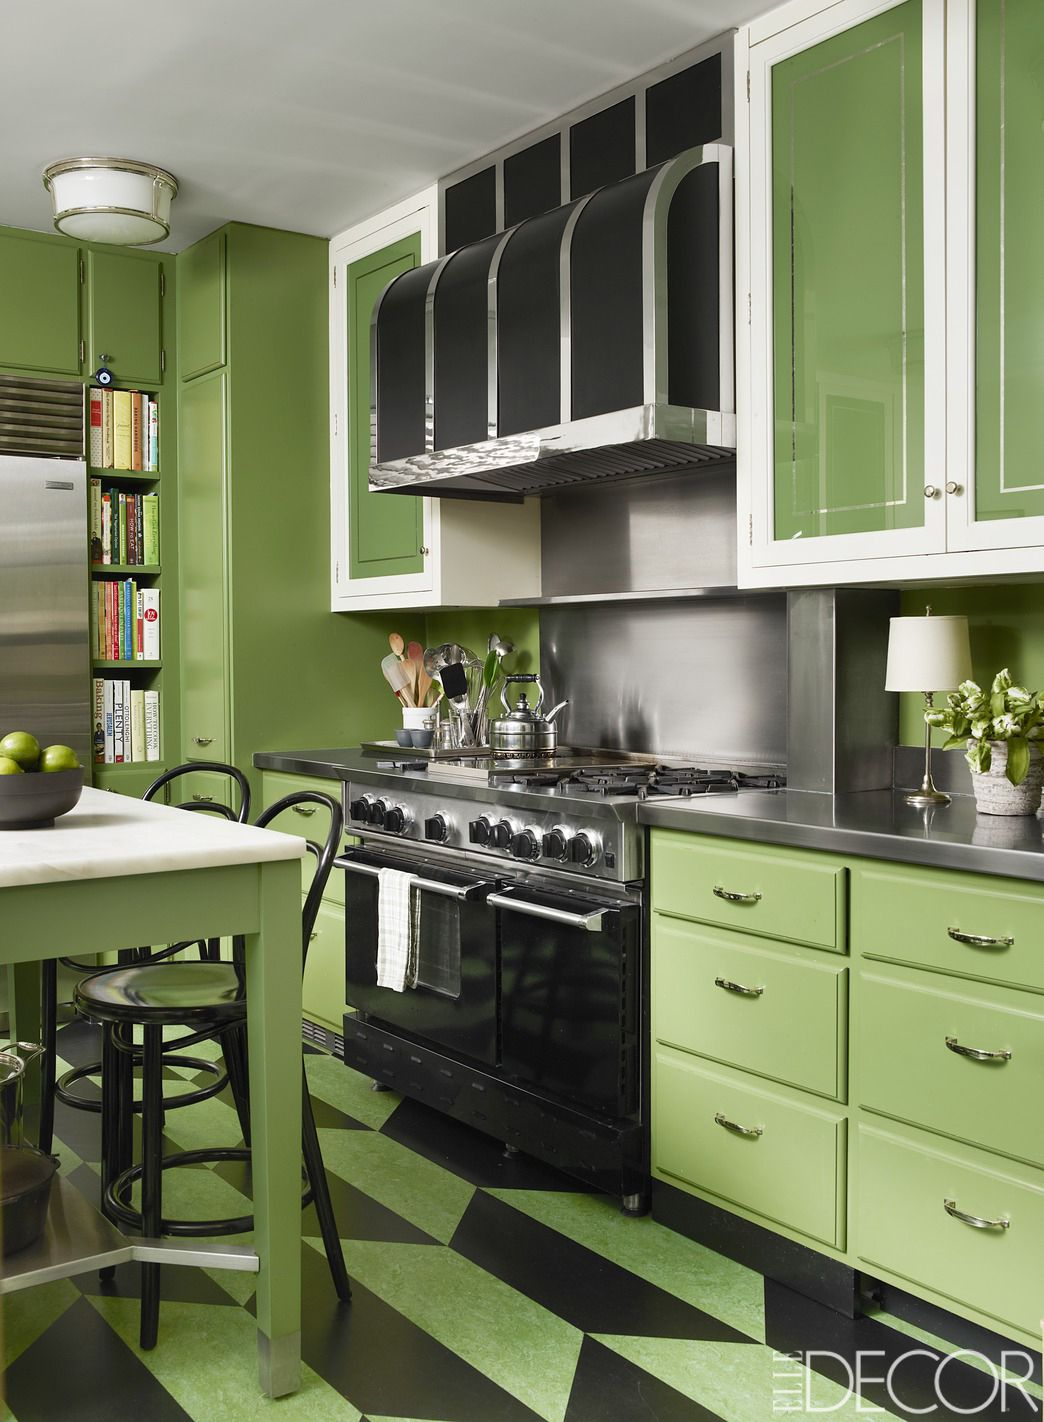 Designer Kitchen 50 Small Kitchen Design Ideas  Decorating Tiny Kitchens